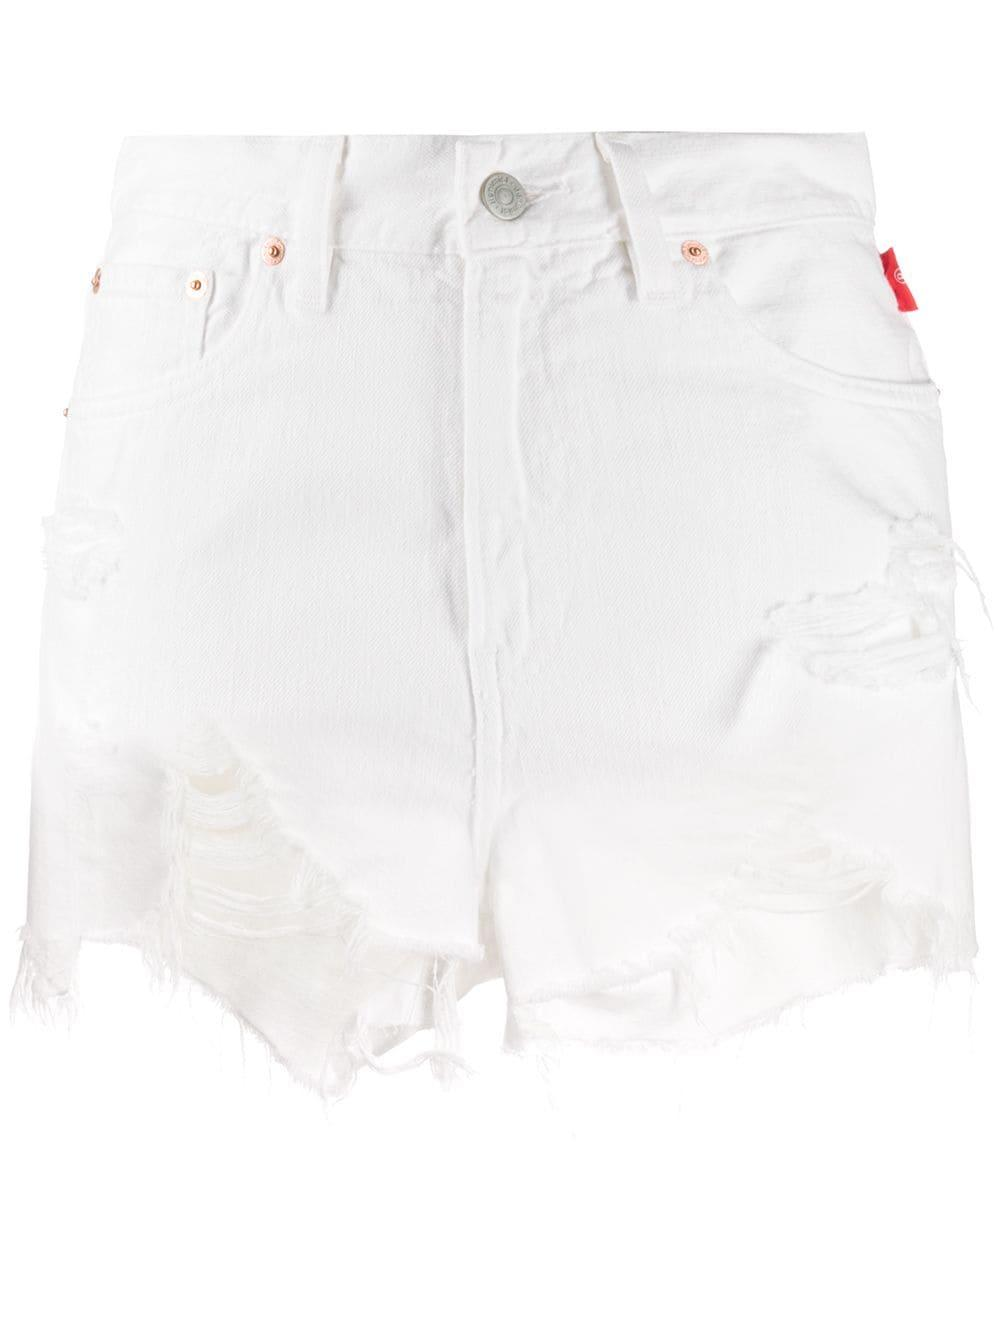 Nic Distressed Hem Cutoff Shorts